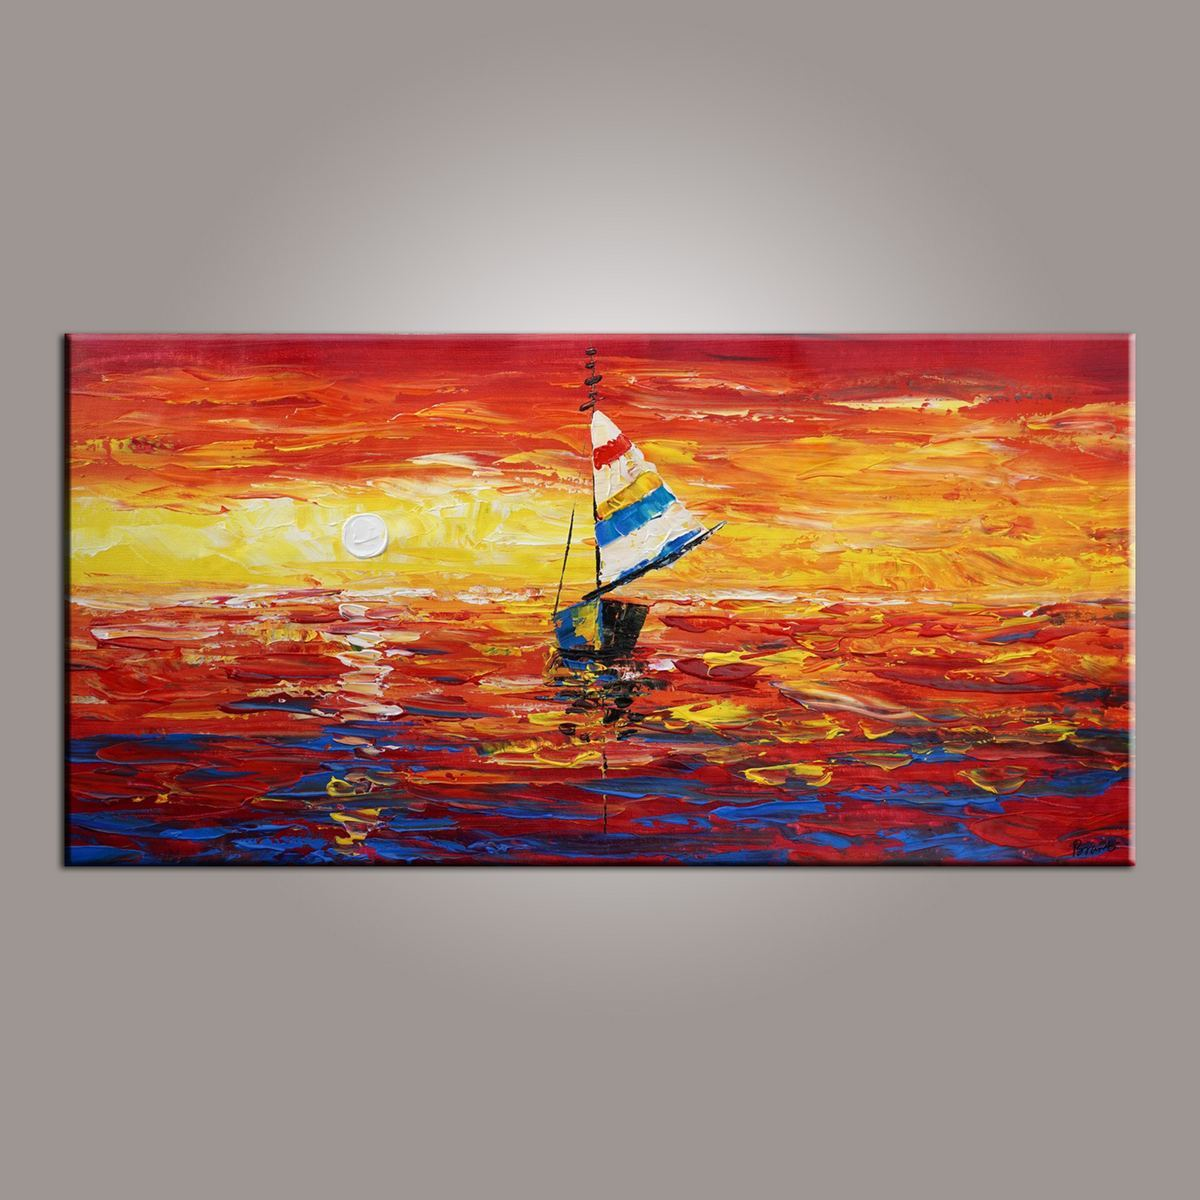 Contemporary Art, Art on Canvas, Boat Painting, Modern Art, Art Painting, Abstract Art, Dining Room Wall Art, Canvas Art, Art for Sale - Silvia Home Craft